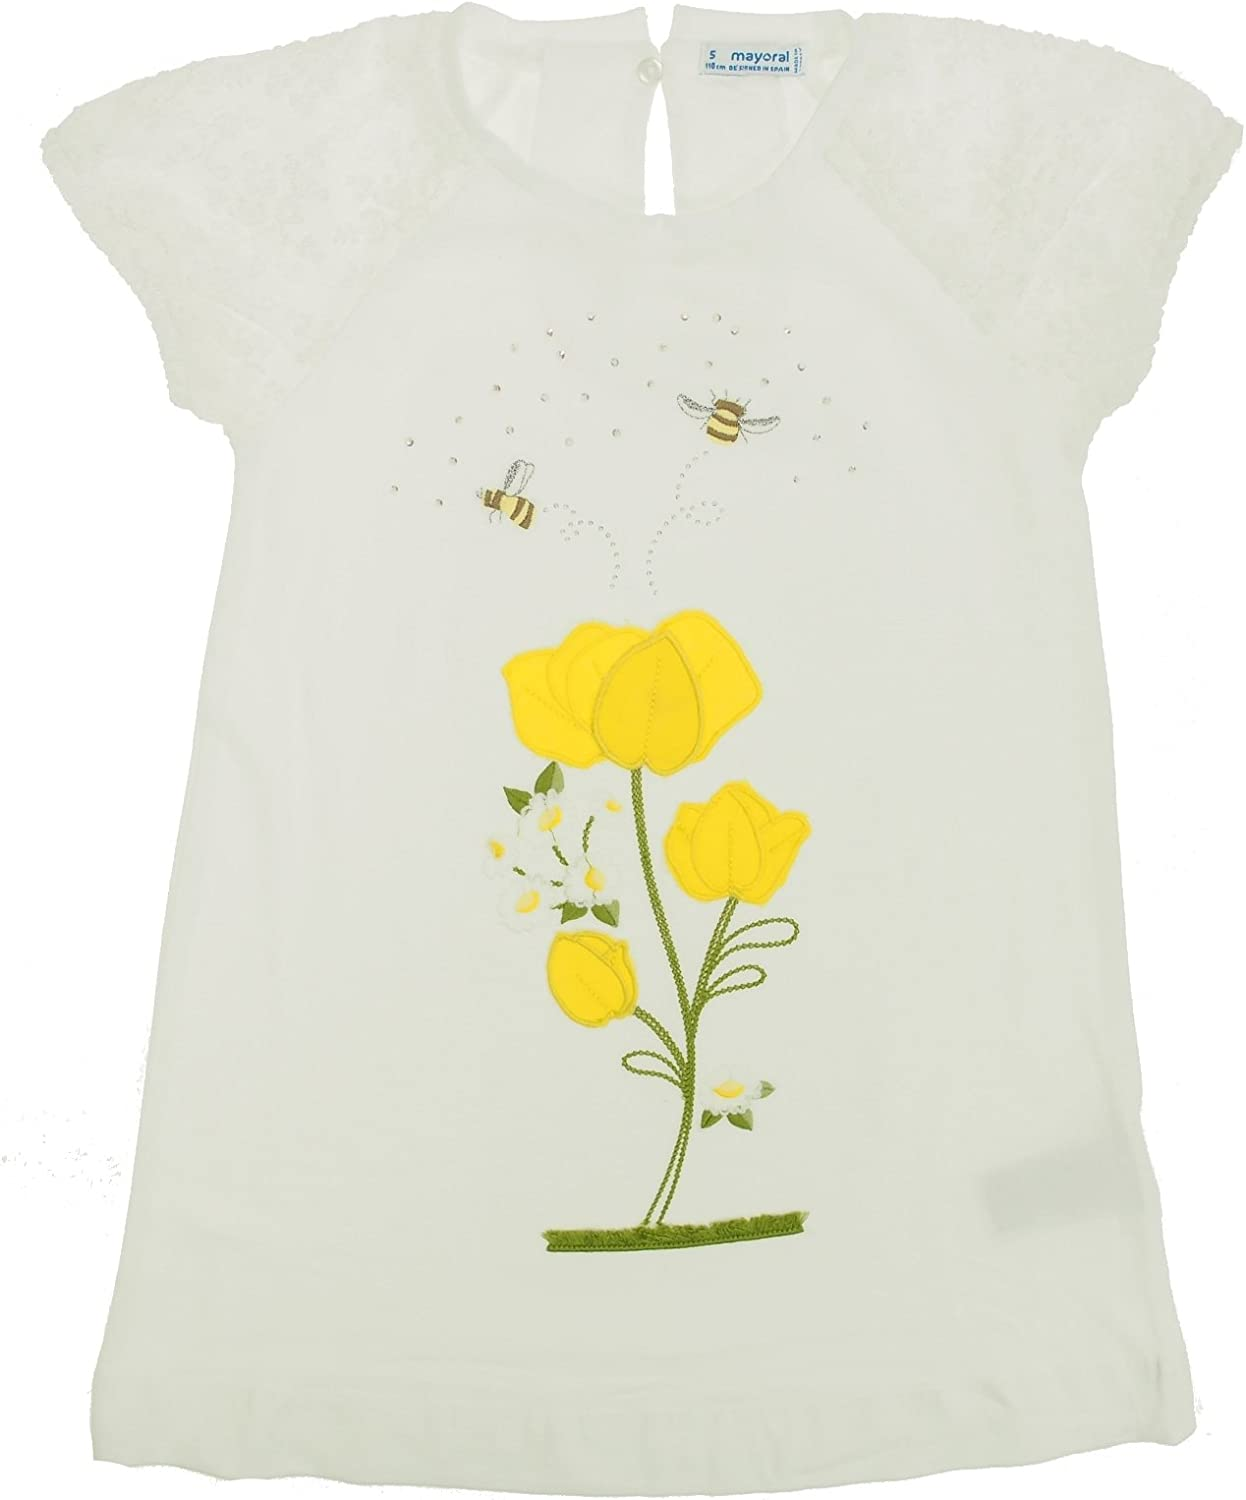 Mayoral - Flower Embroidered Dress for Girls - 3944, Yellow